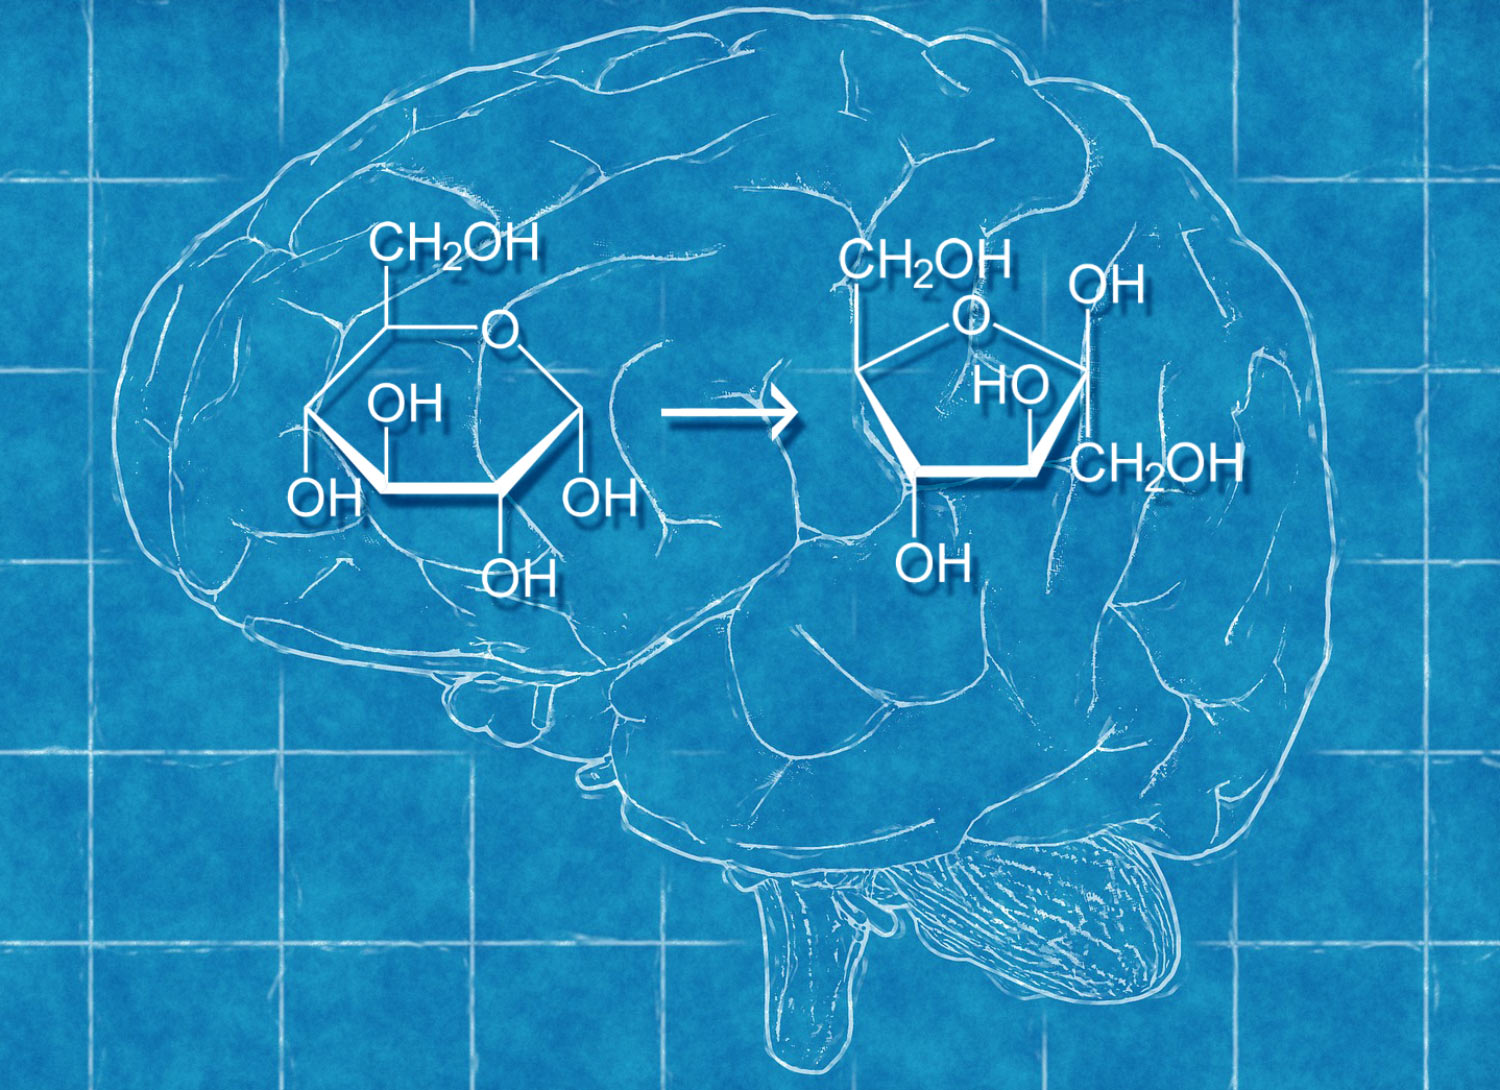 The human brain can produce fructose, new experiment suggests